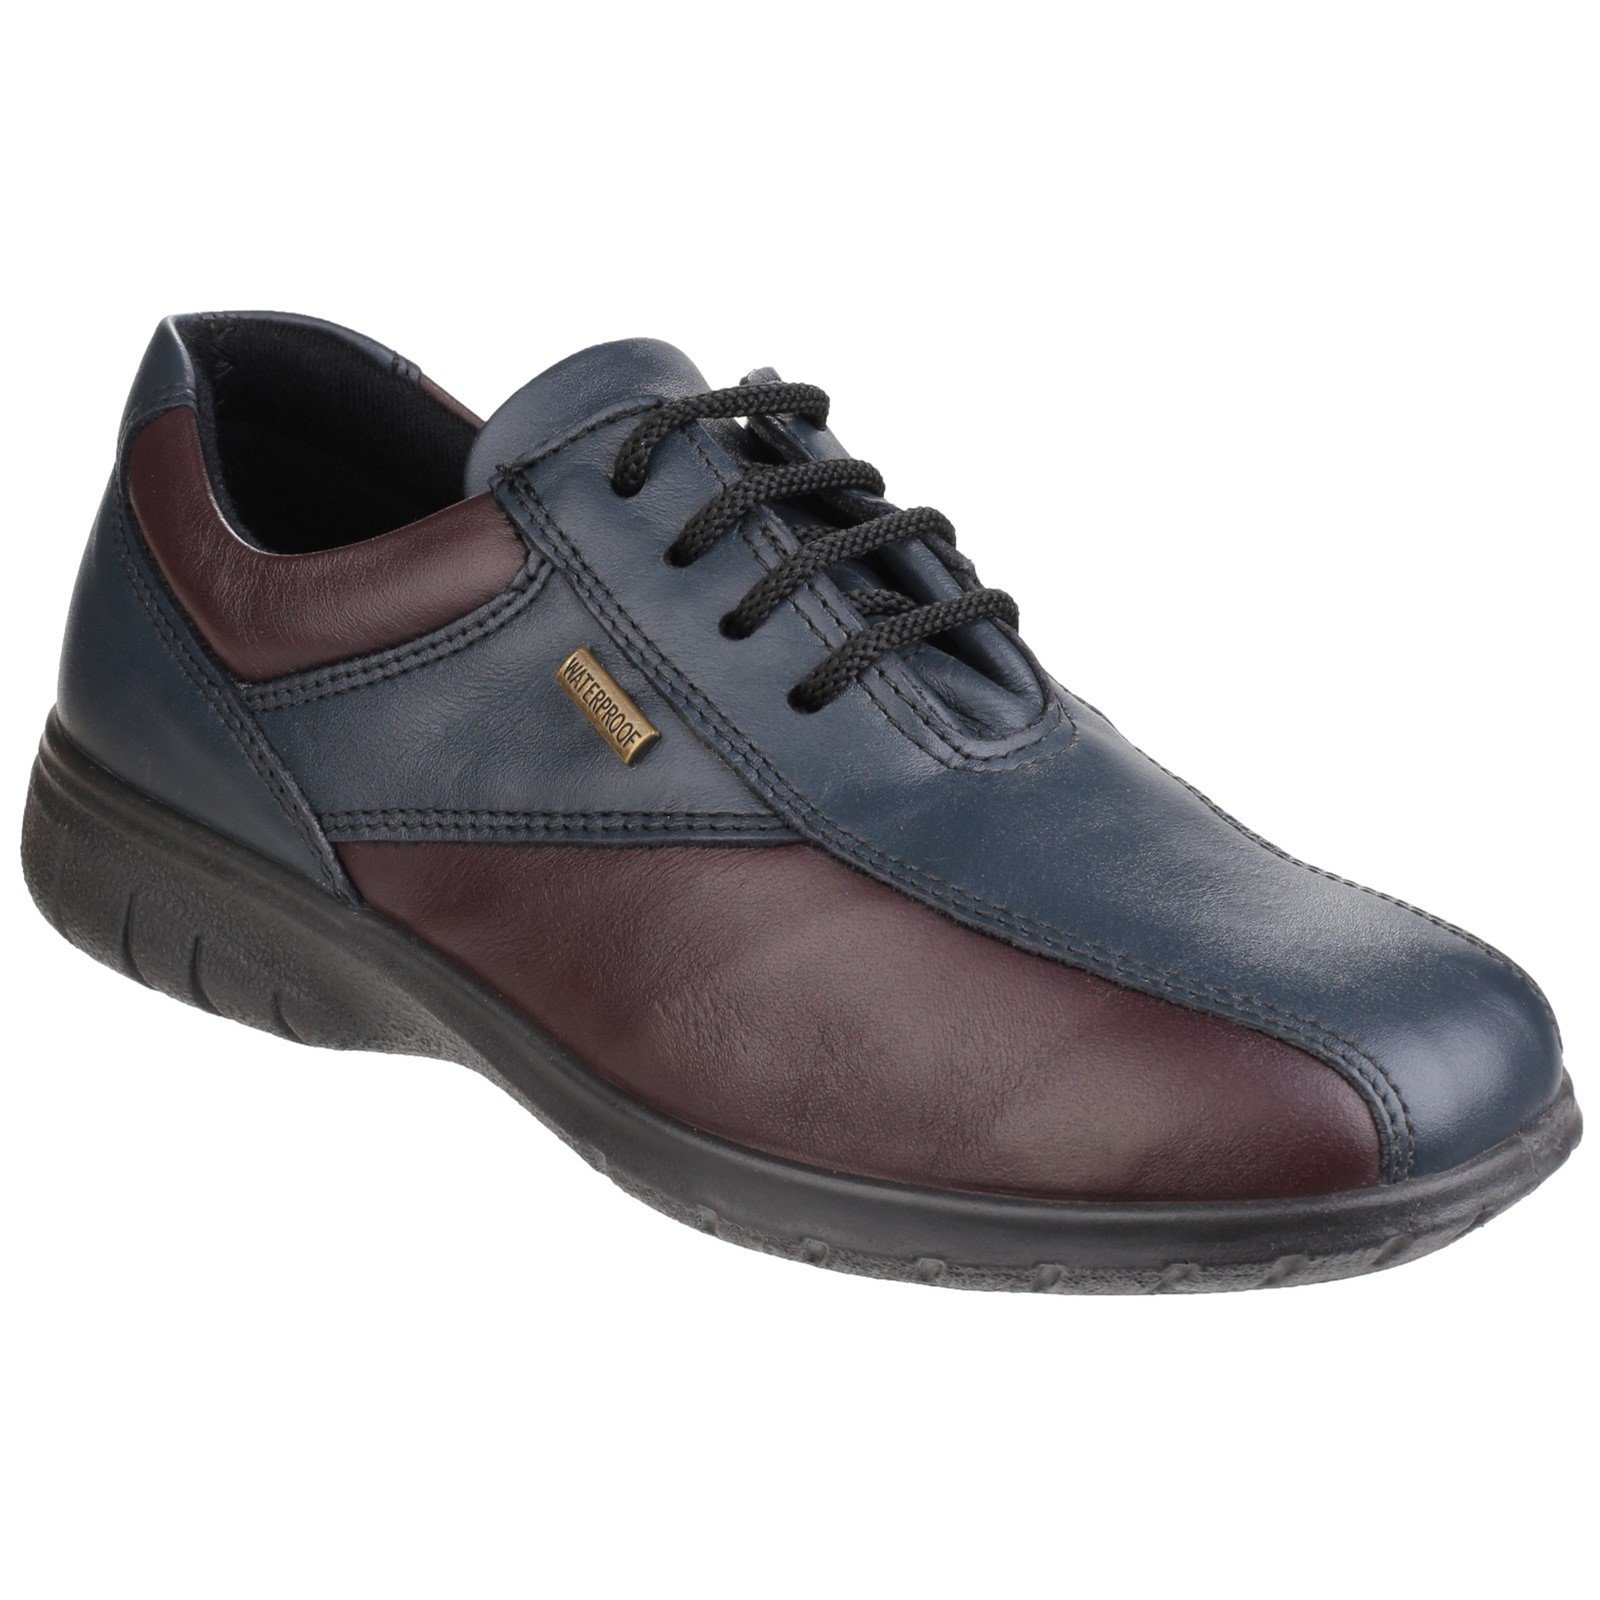 Cotswold Women's Collection Salford Shoe Various Colours 32981 - Navy/Bordo 8